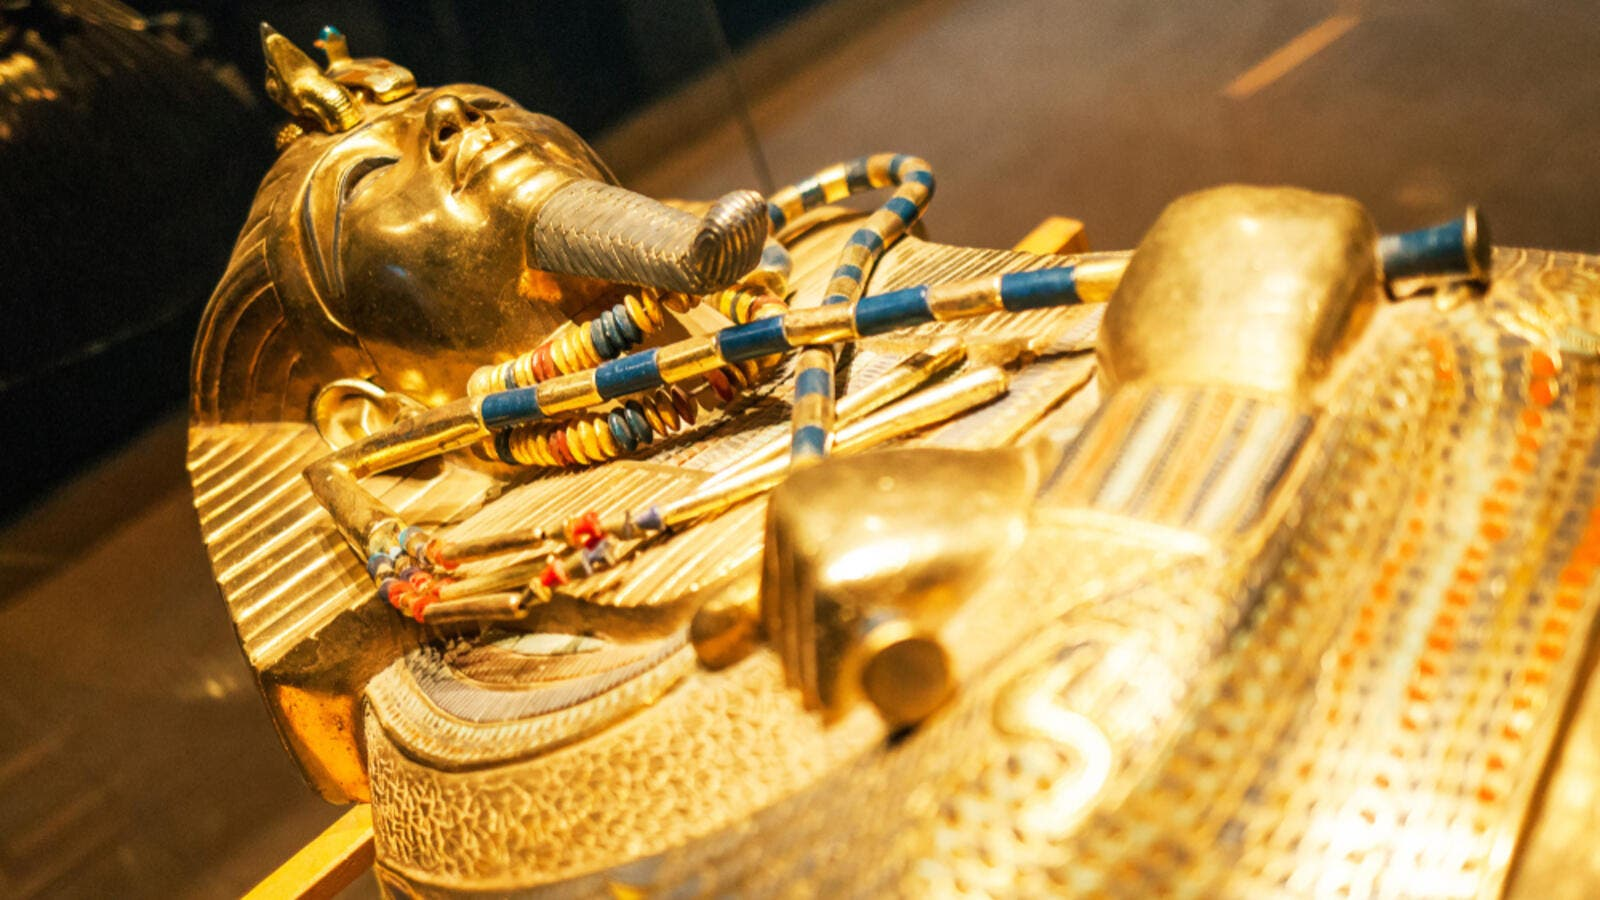 Original gold mask of the pharaoh in museum (Shutterstock)